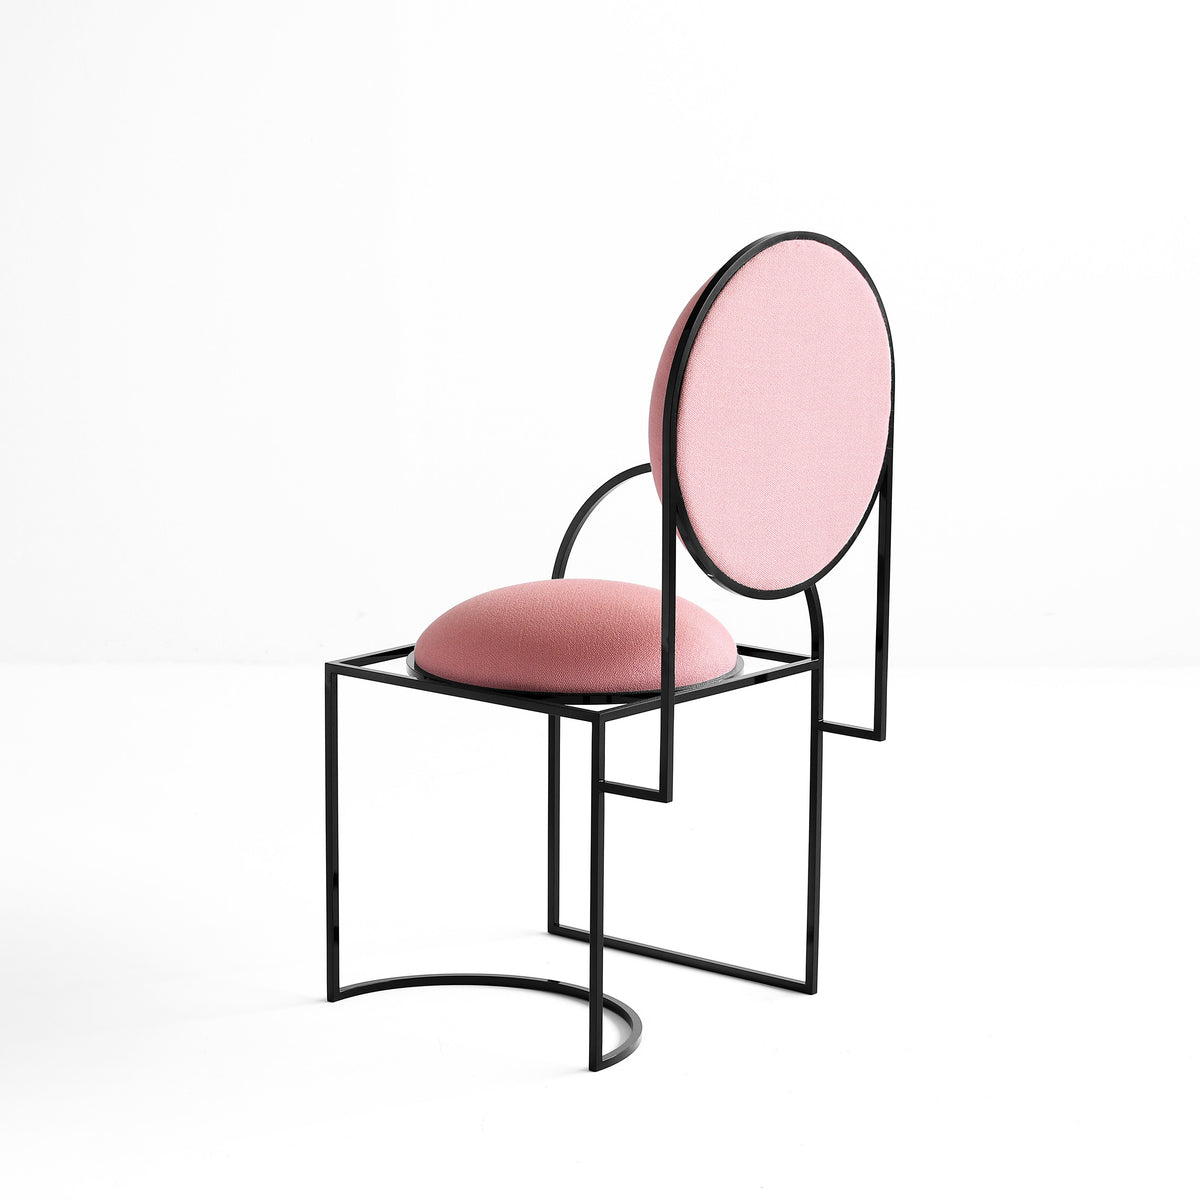 SOLAR CHAIR - PINK